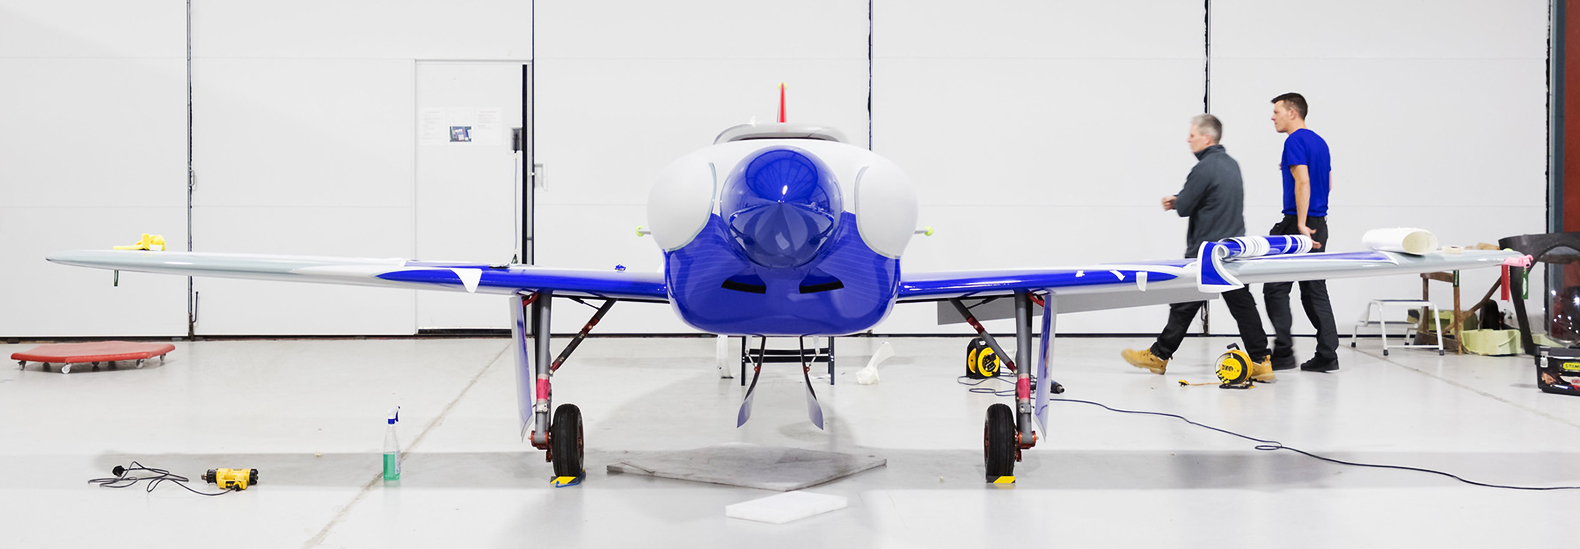 Electric Plane by Rolls-Royce